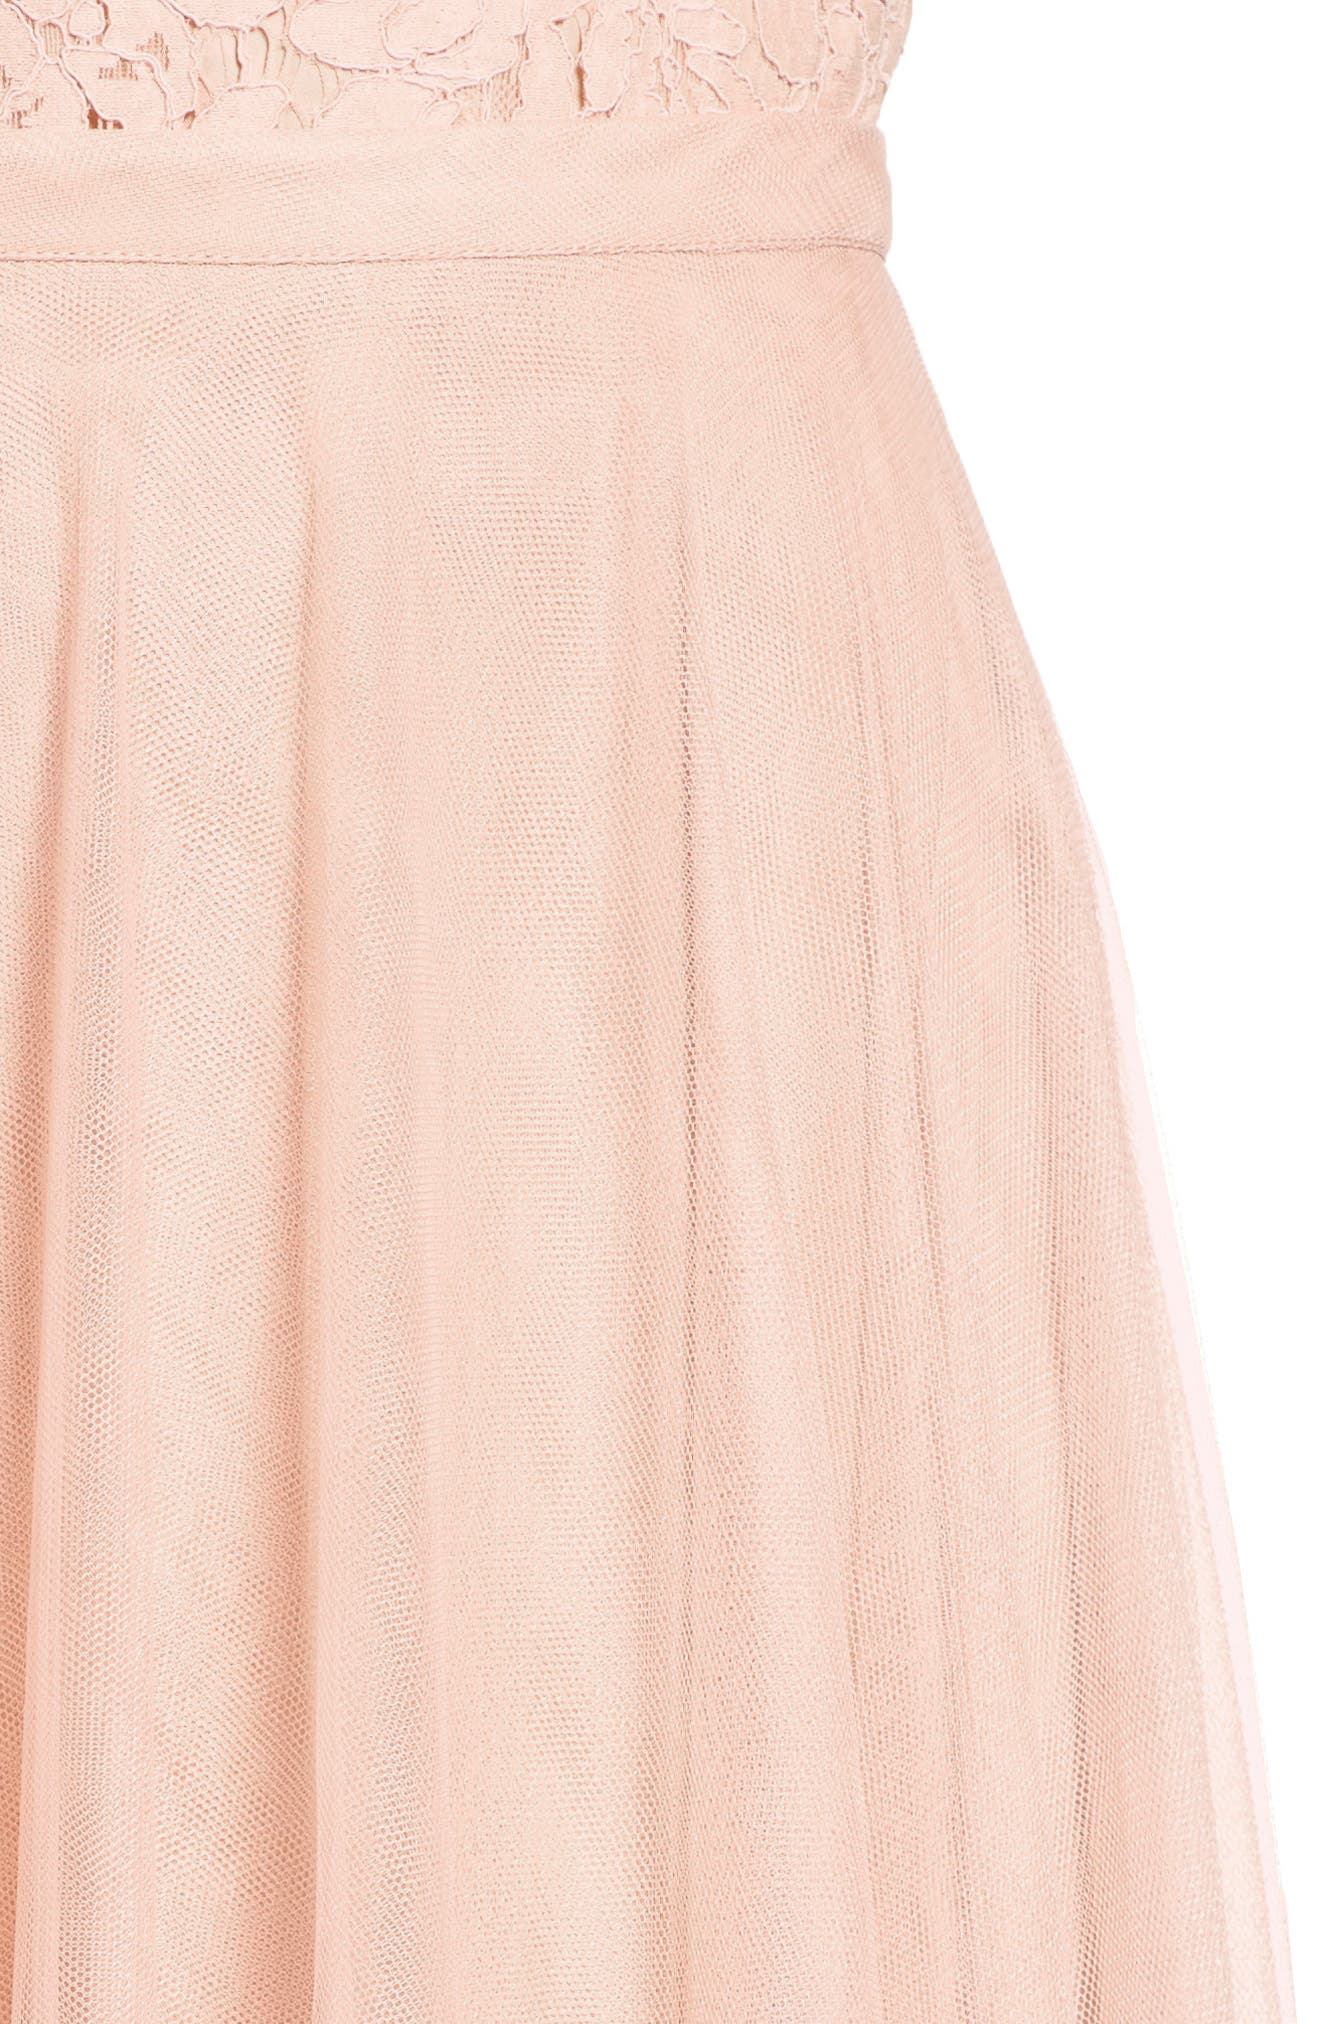 Winslow Long Tulle A-Line Skirt,                             Alternate thumbnail 5, color,                             CAMEO PINK